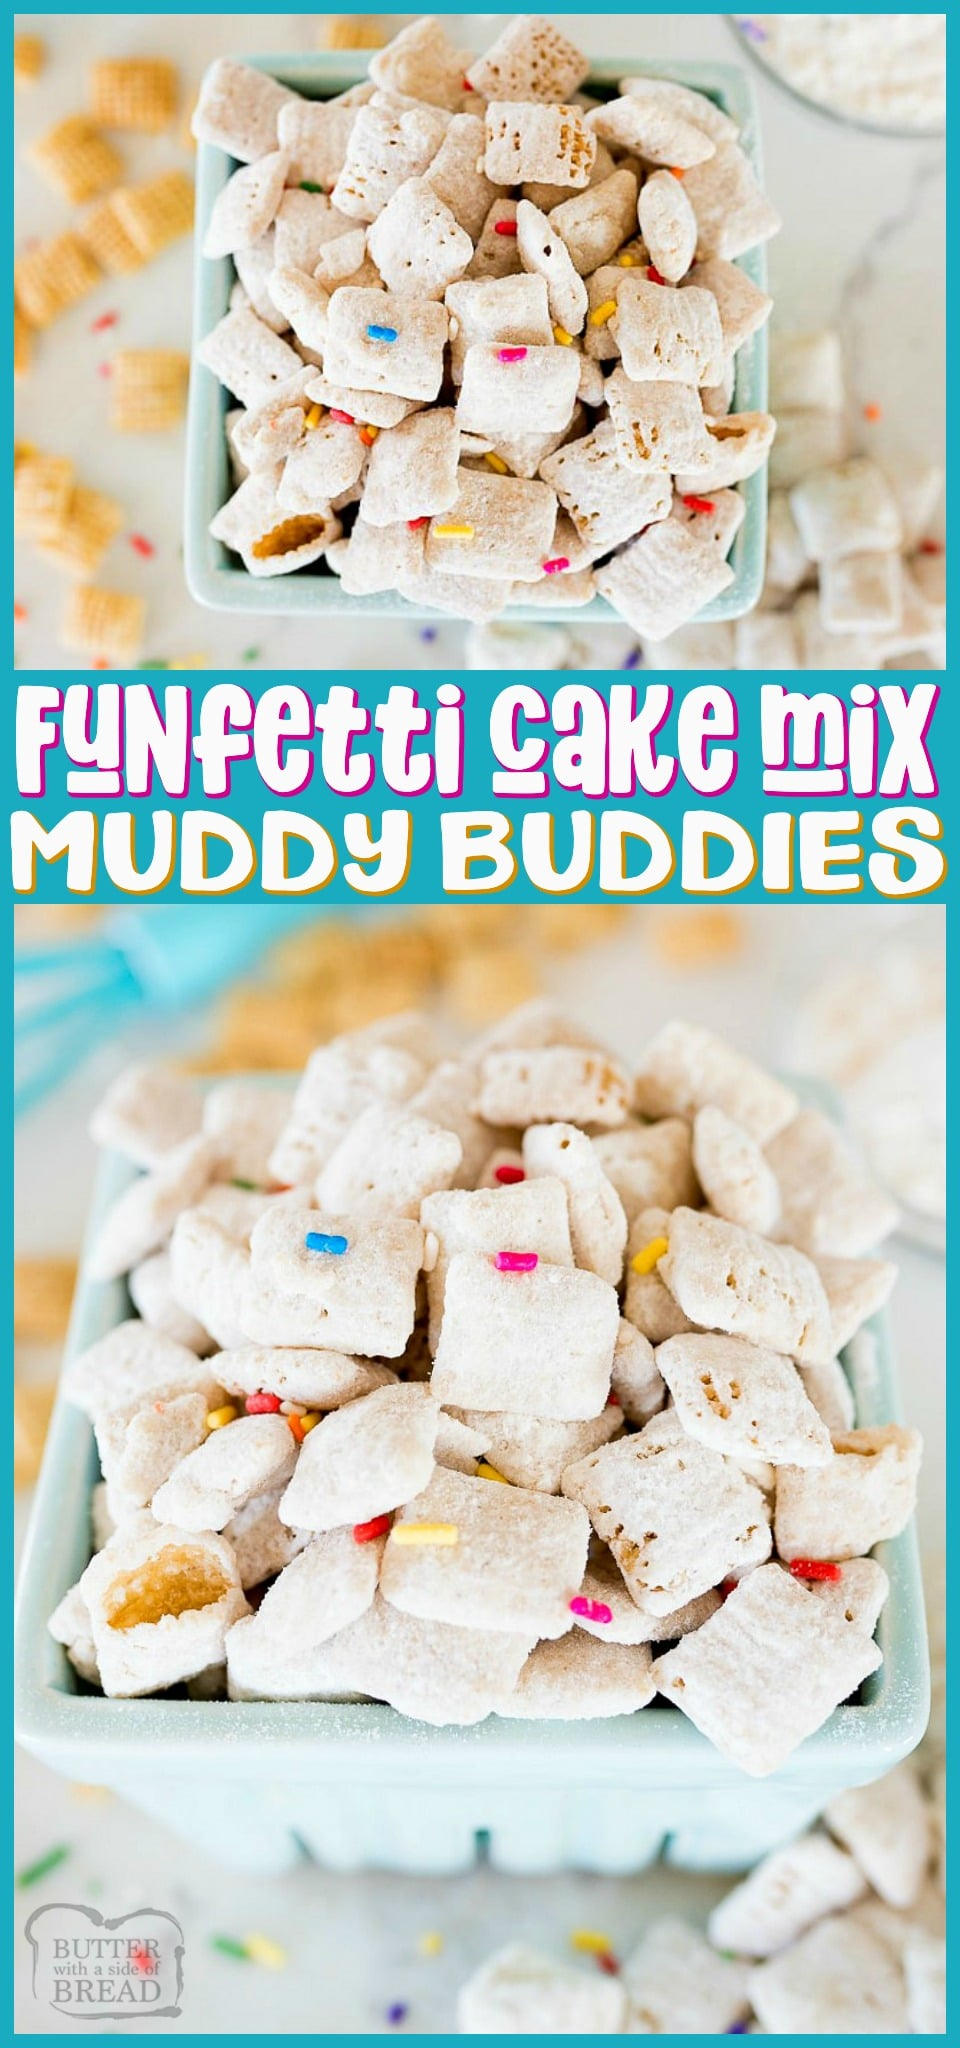 Funfetti Chex Mix is a sweet & crunchy, no bake cereal dessert that is loaded with that birthday cake flavor. With only 5 ingredients and about 5 minutes of work, this is you're new go-to Chex mix! #chex #treats #nobake #funfetti #cakemix #muddybuddies #chexmix #recipe from BUTTER WITH A SIDE OF BREAD